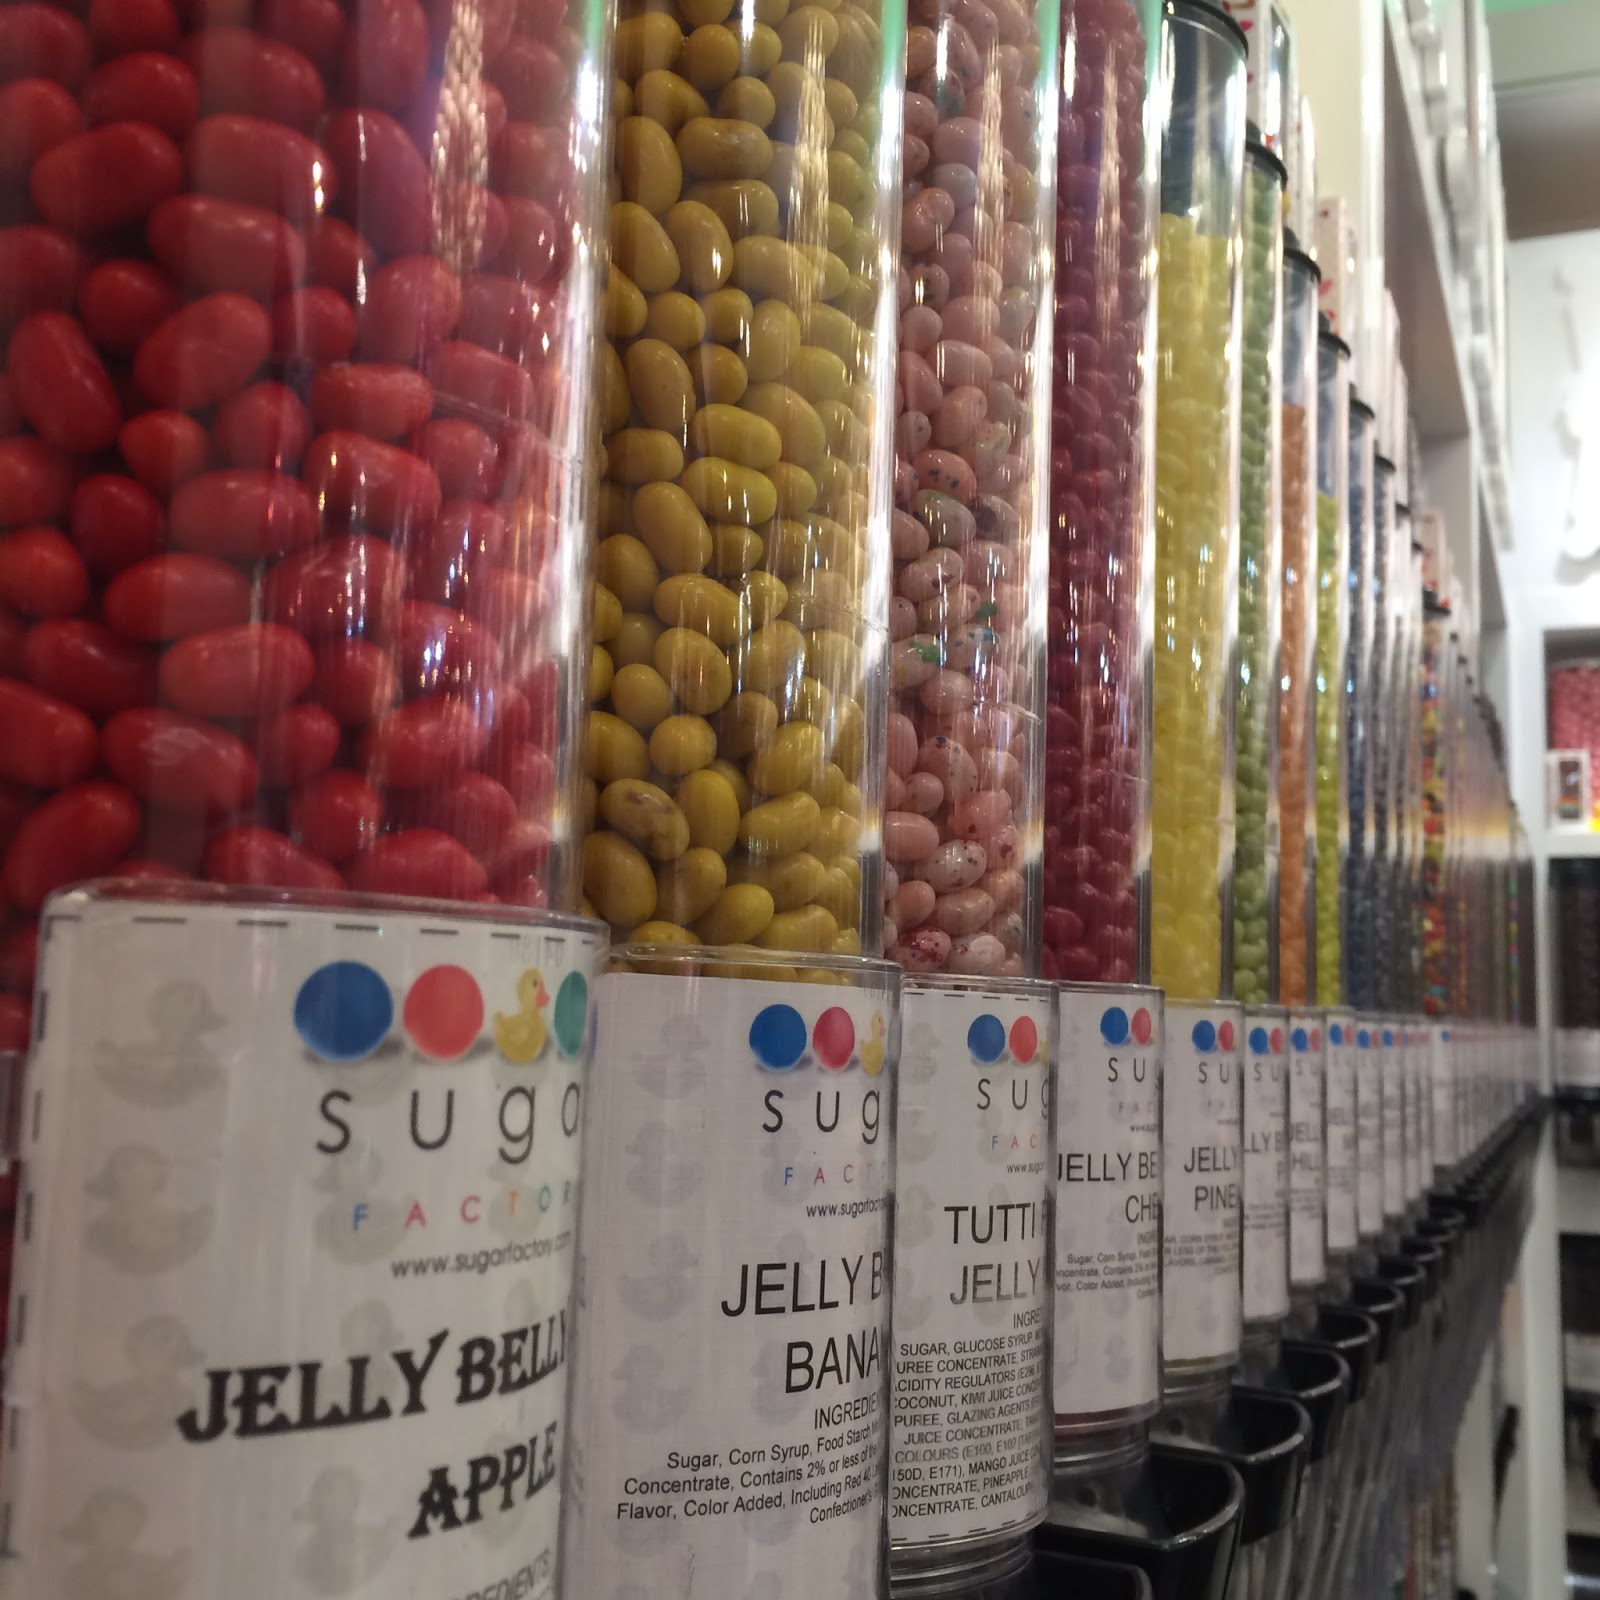 Sugar Factory Candy- Ultimate Guide to Restaurants in Rosemont   all dressed up with nothing to drink...